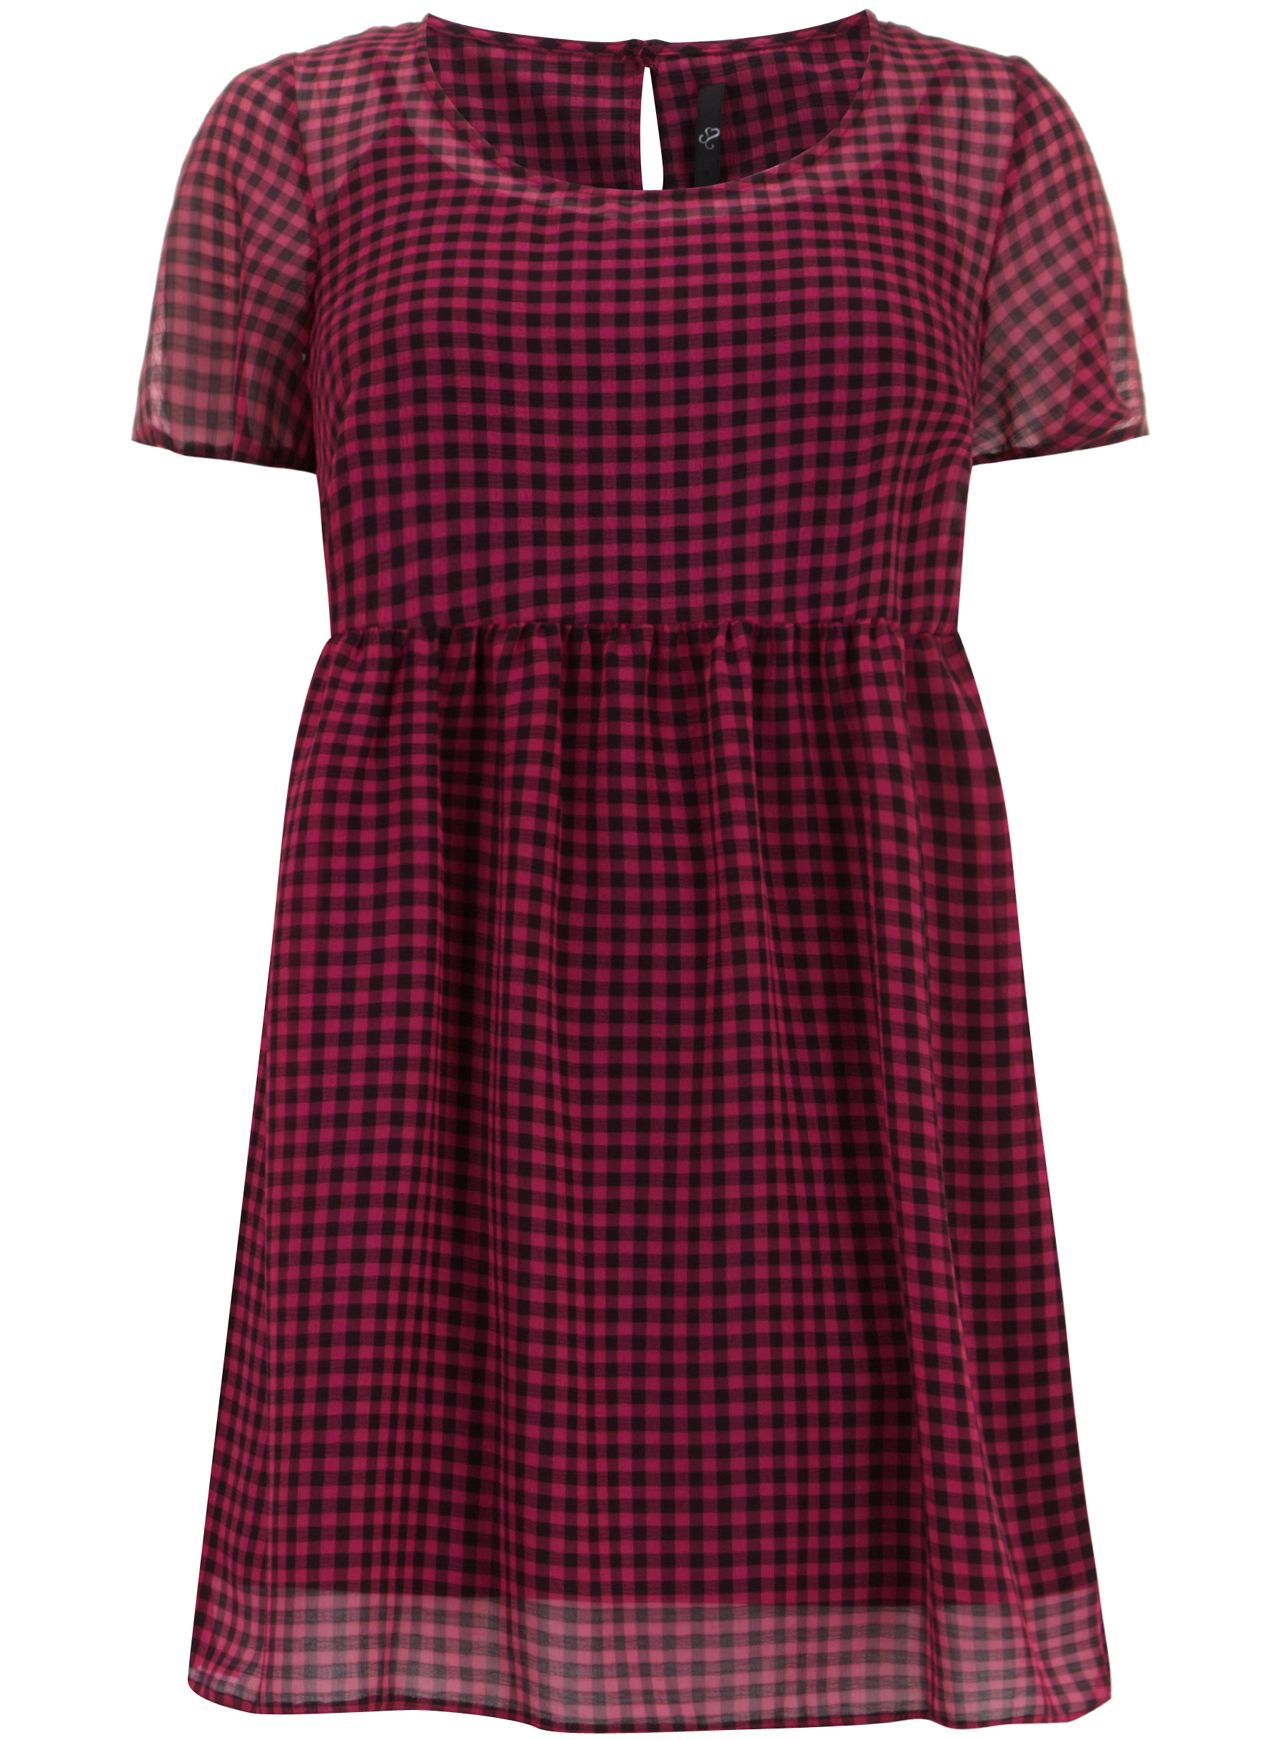 Pink Check Smock Tunic Top